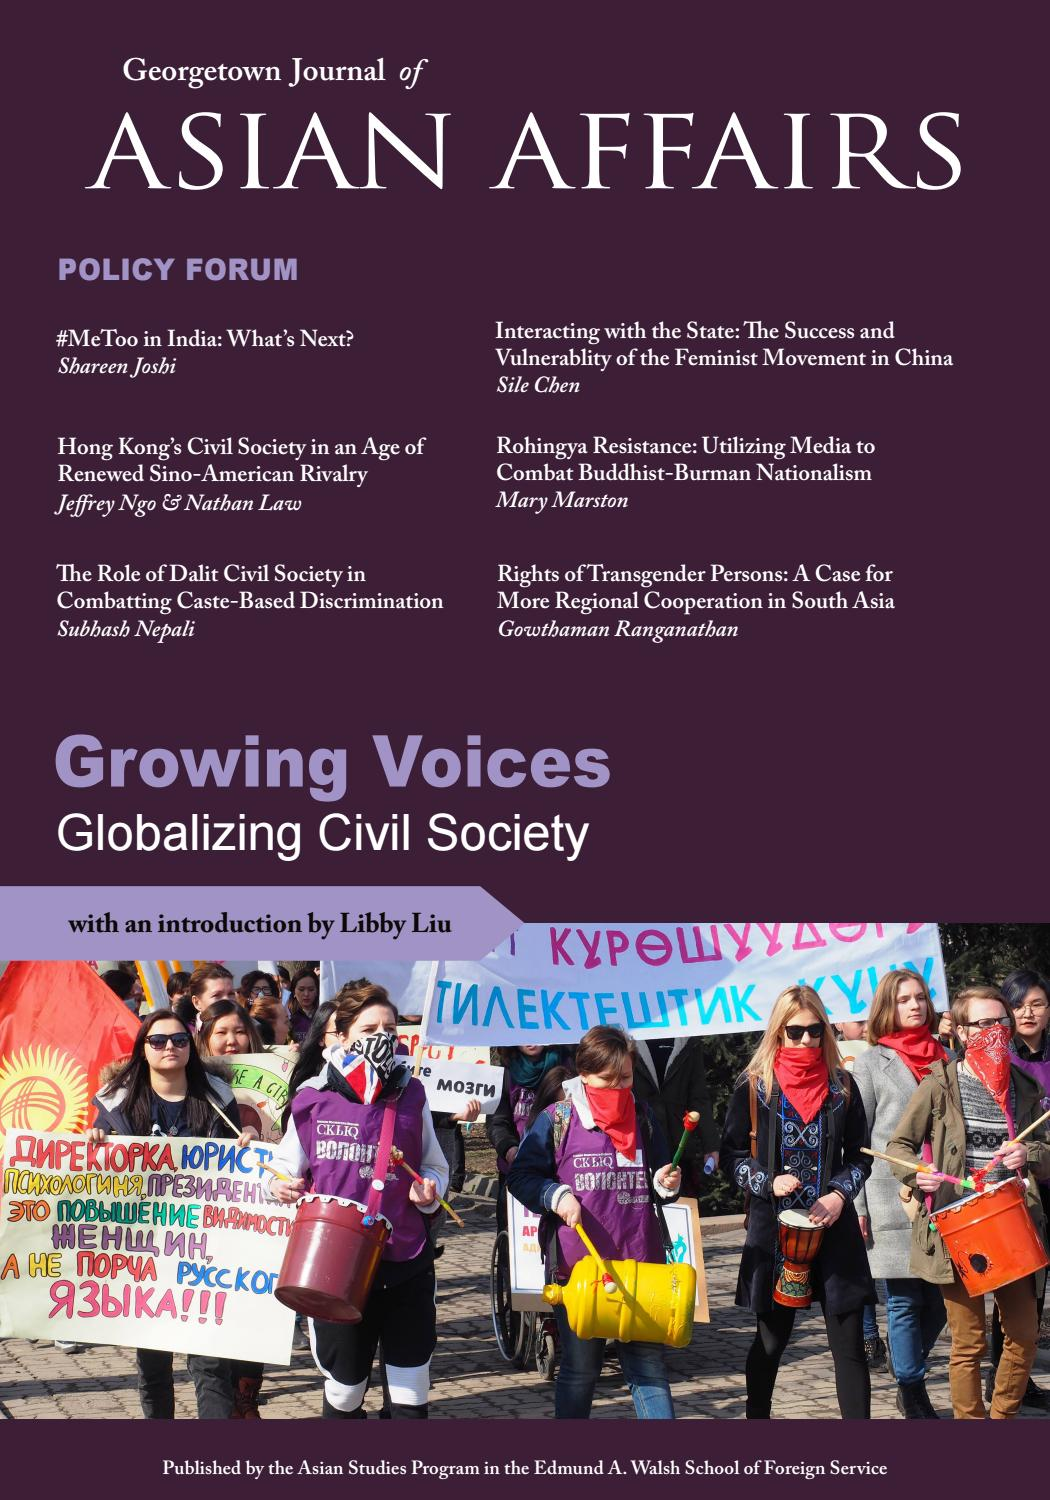 Georgetown Journal of Asian Affairs | Volume 5 | 2019 by